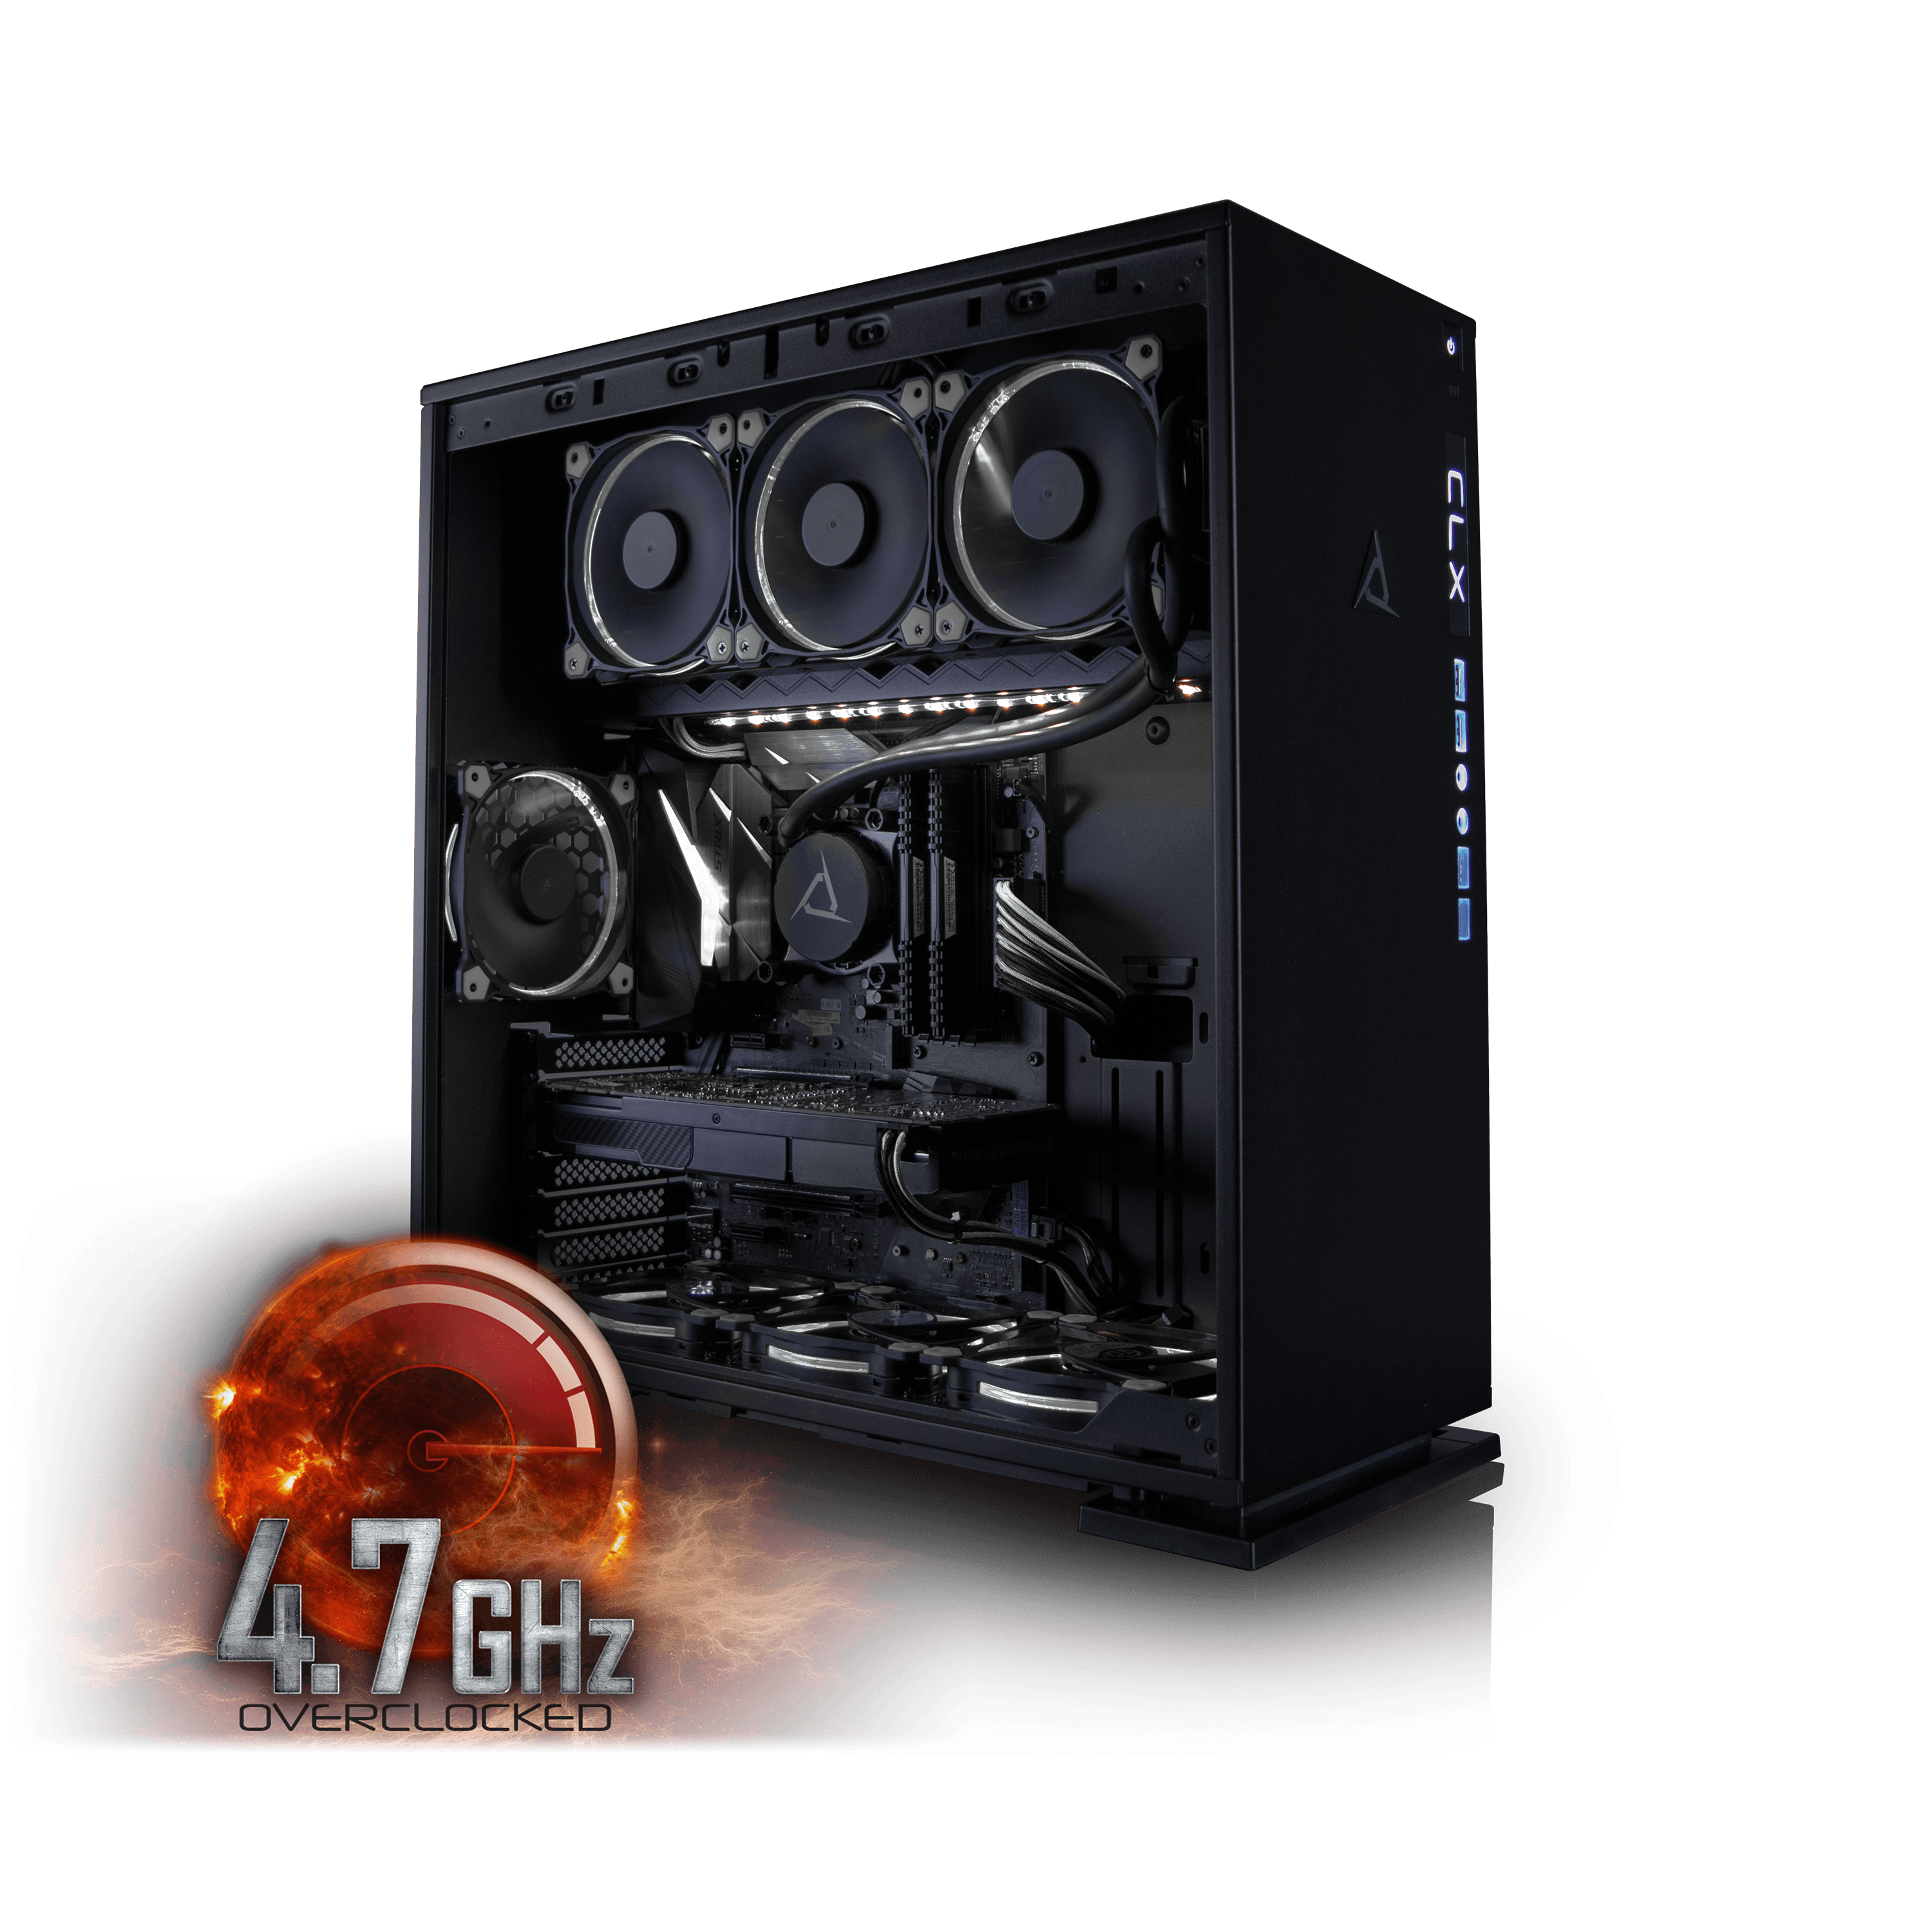 Click here to buy CybertronPC CLX Set High Performance Gaming PC Tripple-Liquid Cooled Z270 Asus Motherboard Intel i7 7700K 4.7GHz(OC)... by CybertronPC.